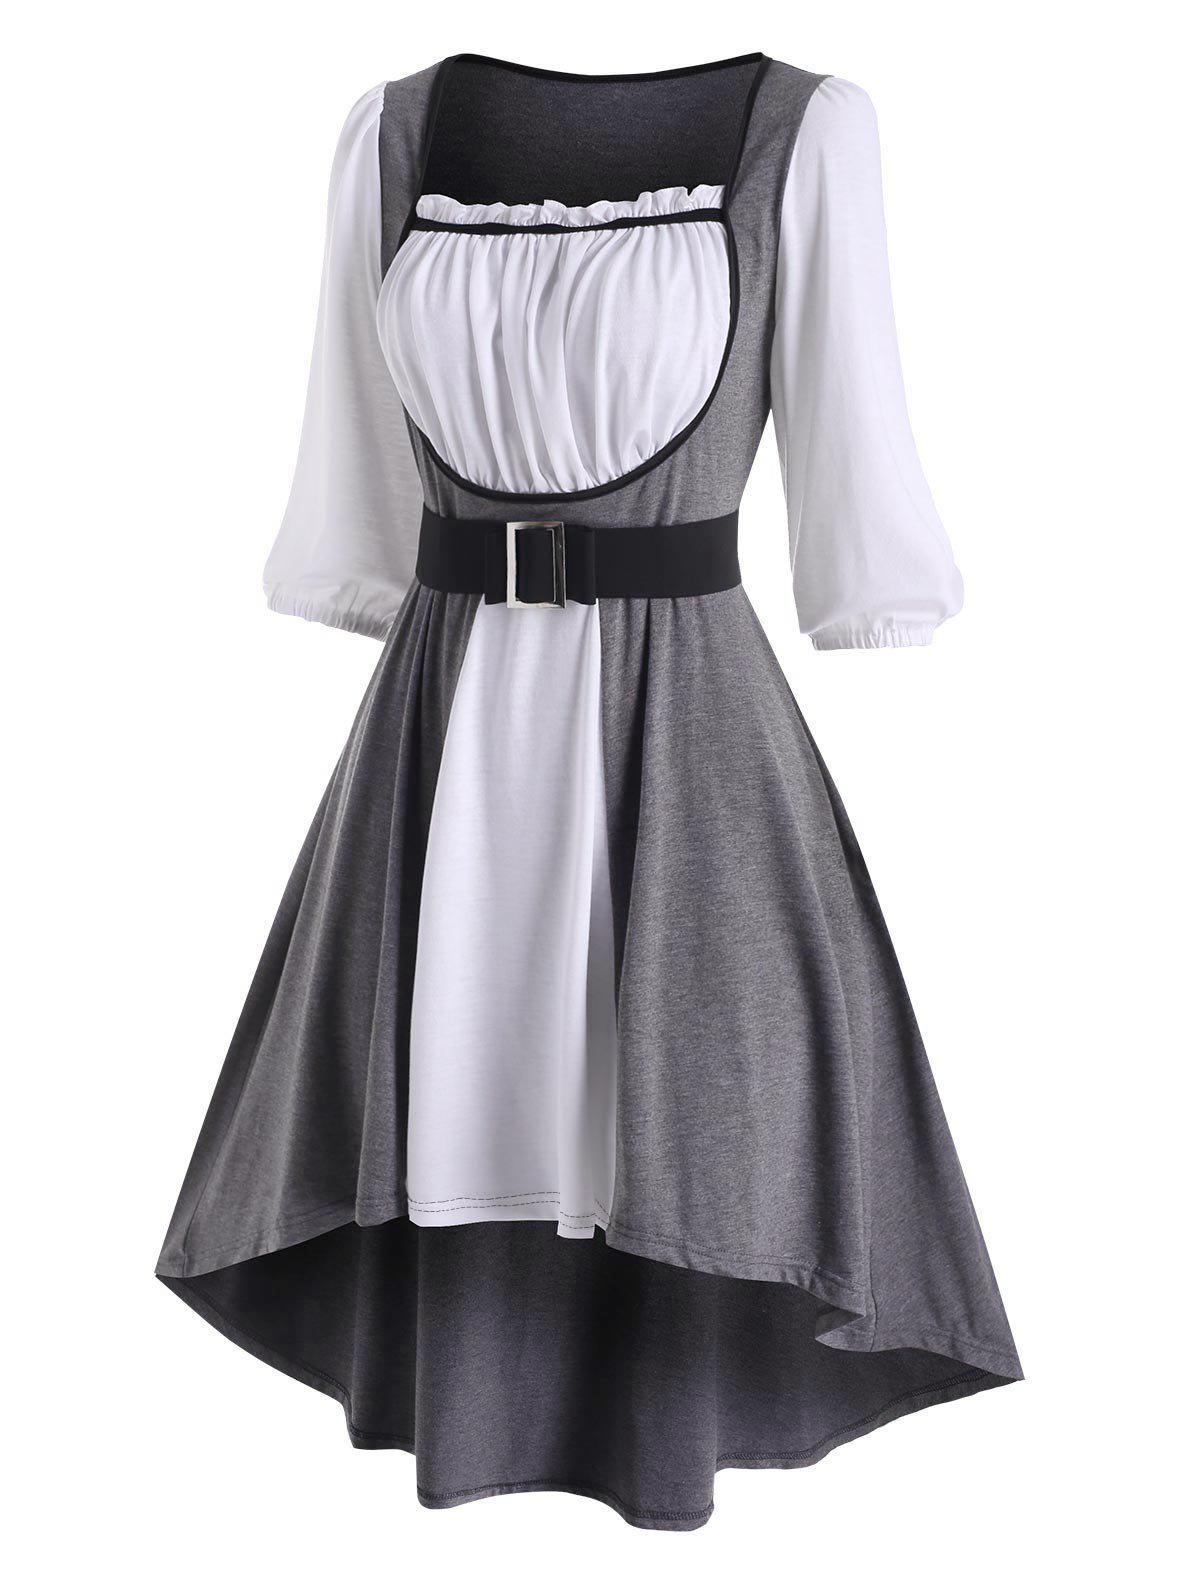 Colorblock Ruffle Belted High Low Dress - GRAY XL